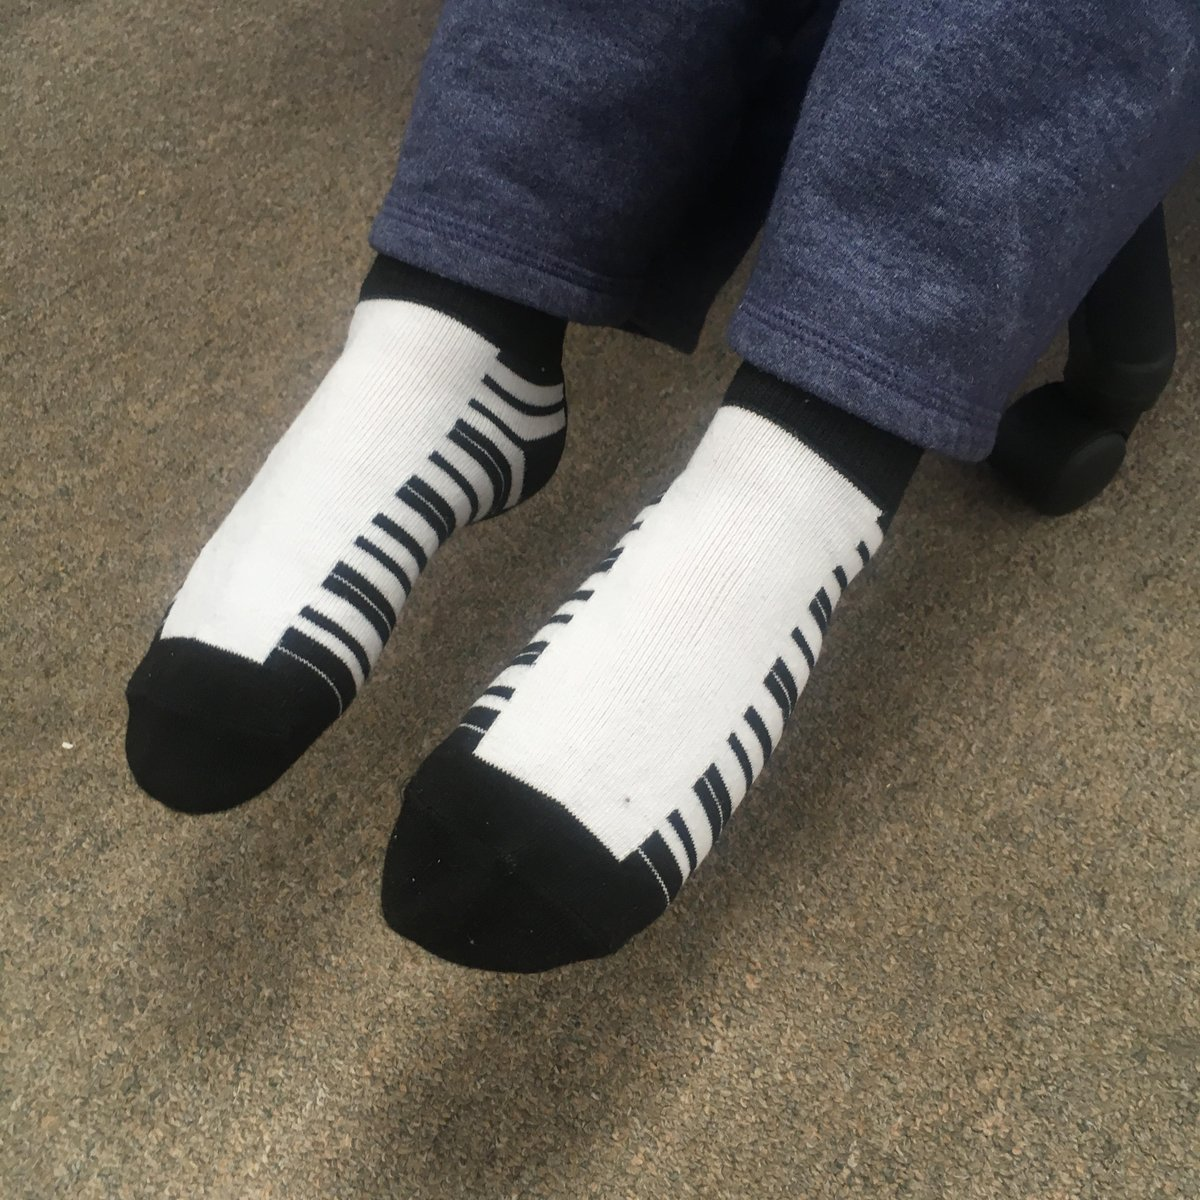 john s crazy socks on twitter fun sock friday guess who is